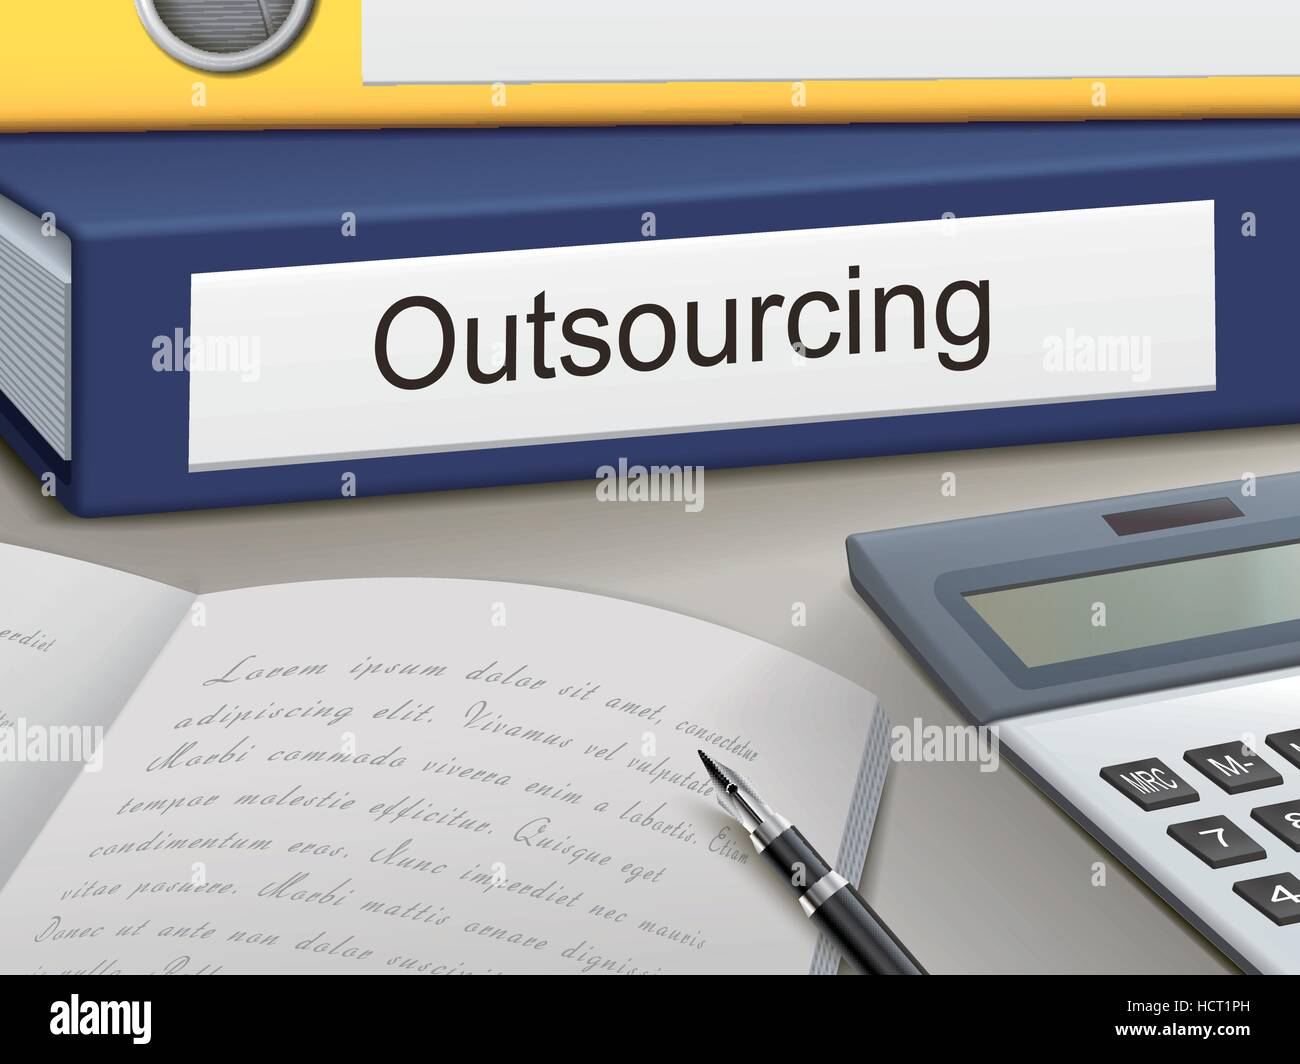 outsourcing binders isolated on the office table - Stock Vector